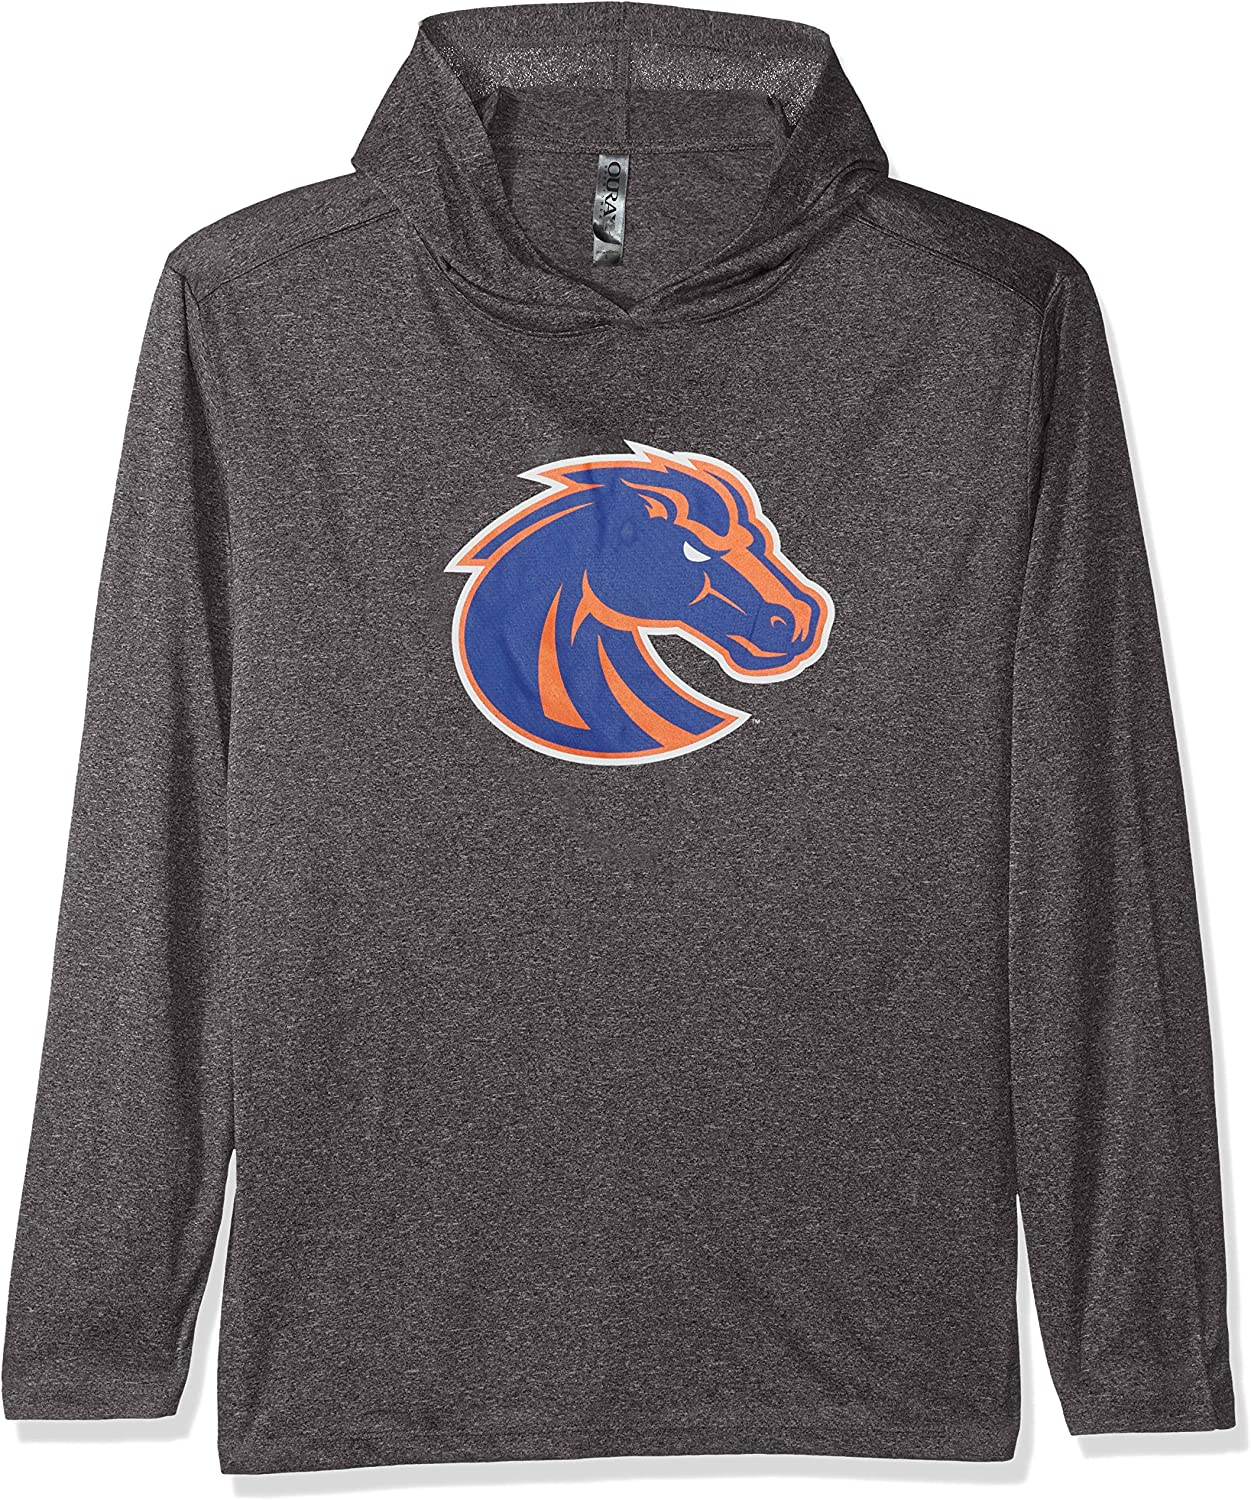 X-Large Athletic Heather Ouray Sportswear NCAA Boise State Broncos Confluence Hood